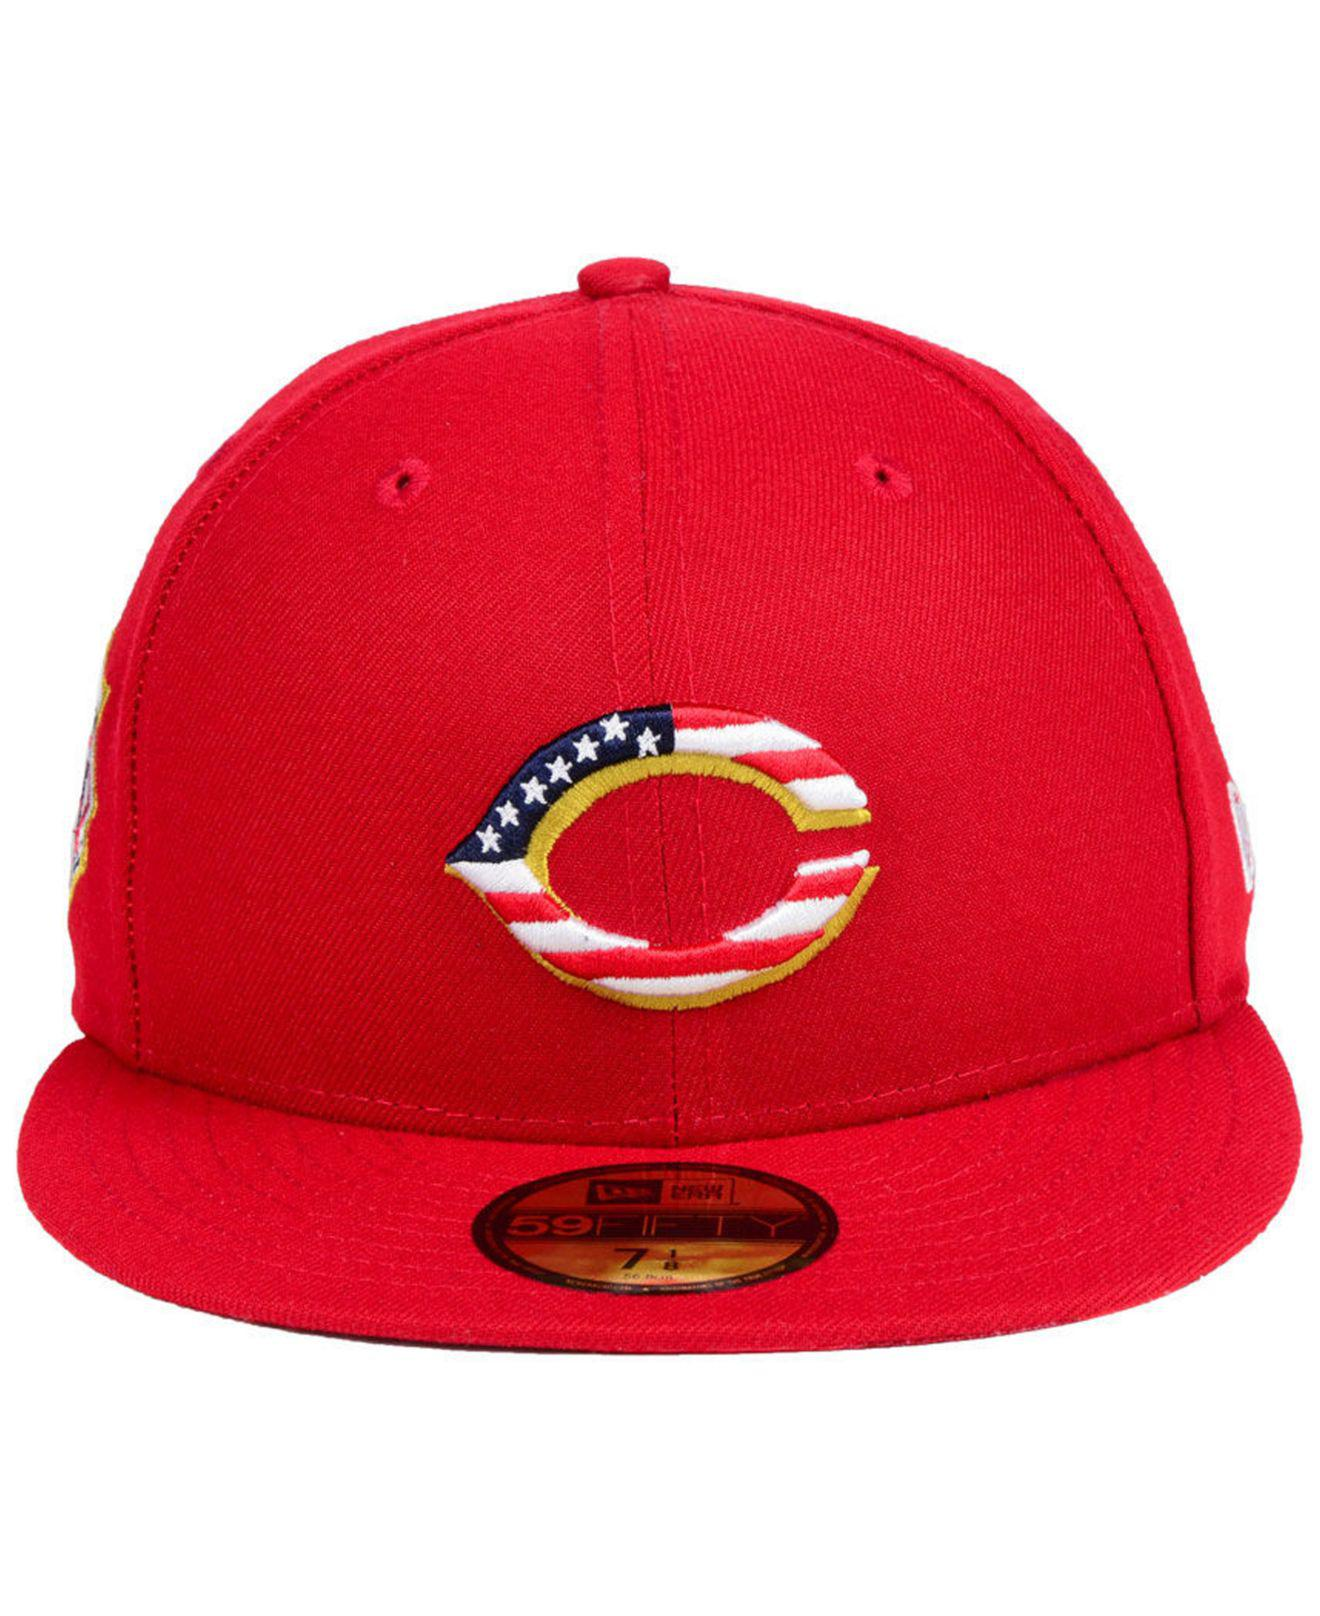 6f7211b7845 Lyst - KTZ Cincinnati Reds Stars And Stripes 59fifty Fitted Cap in Red for  Men